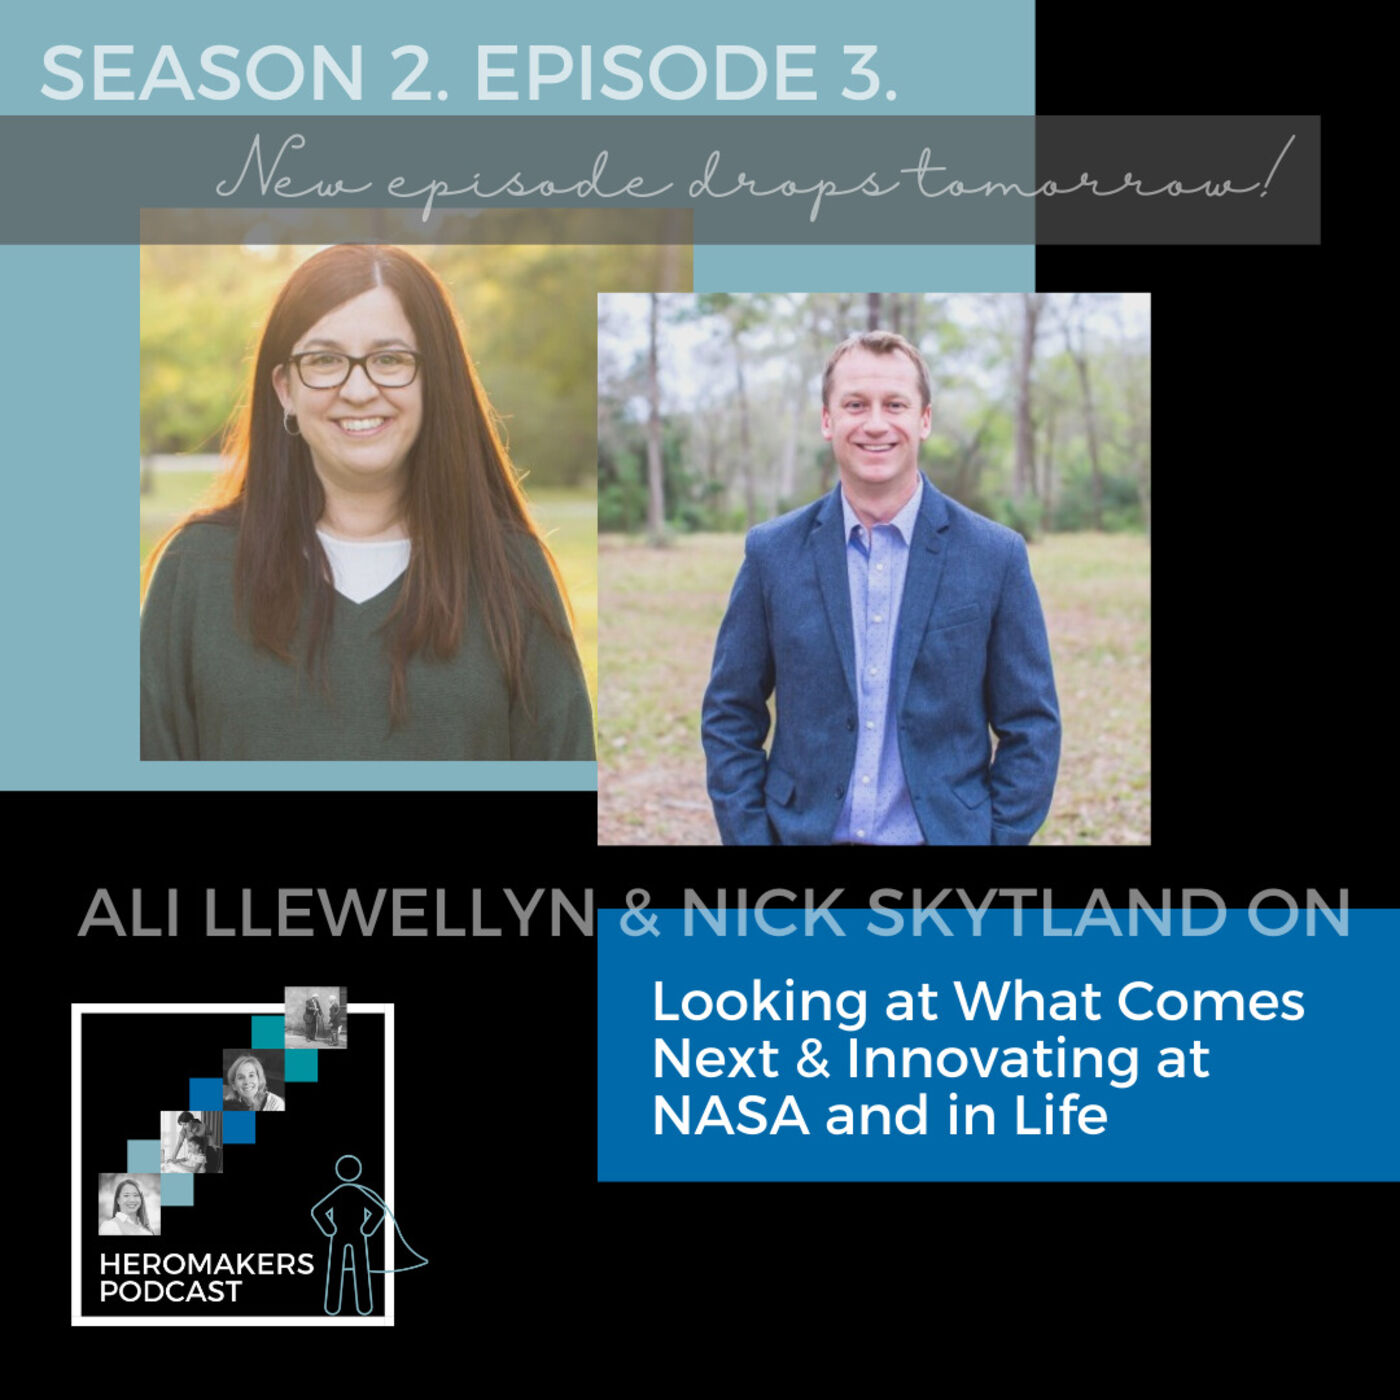 Ali Llewellyn and Nick Skytland on Looking at What Comes Next & Innovating at NASA and in Life